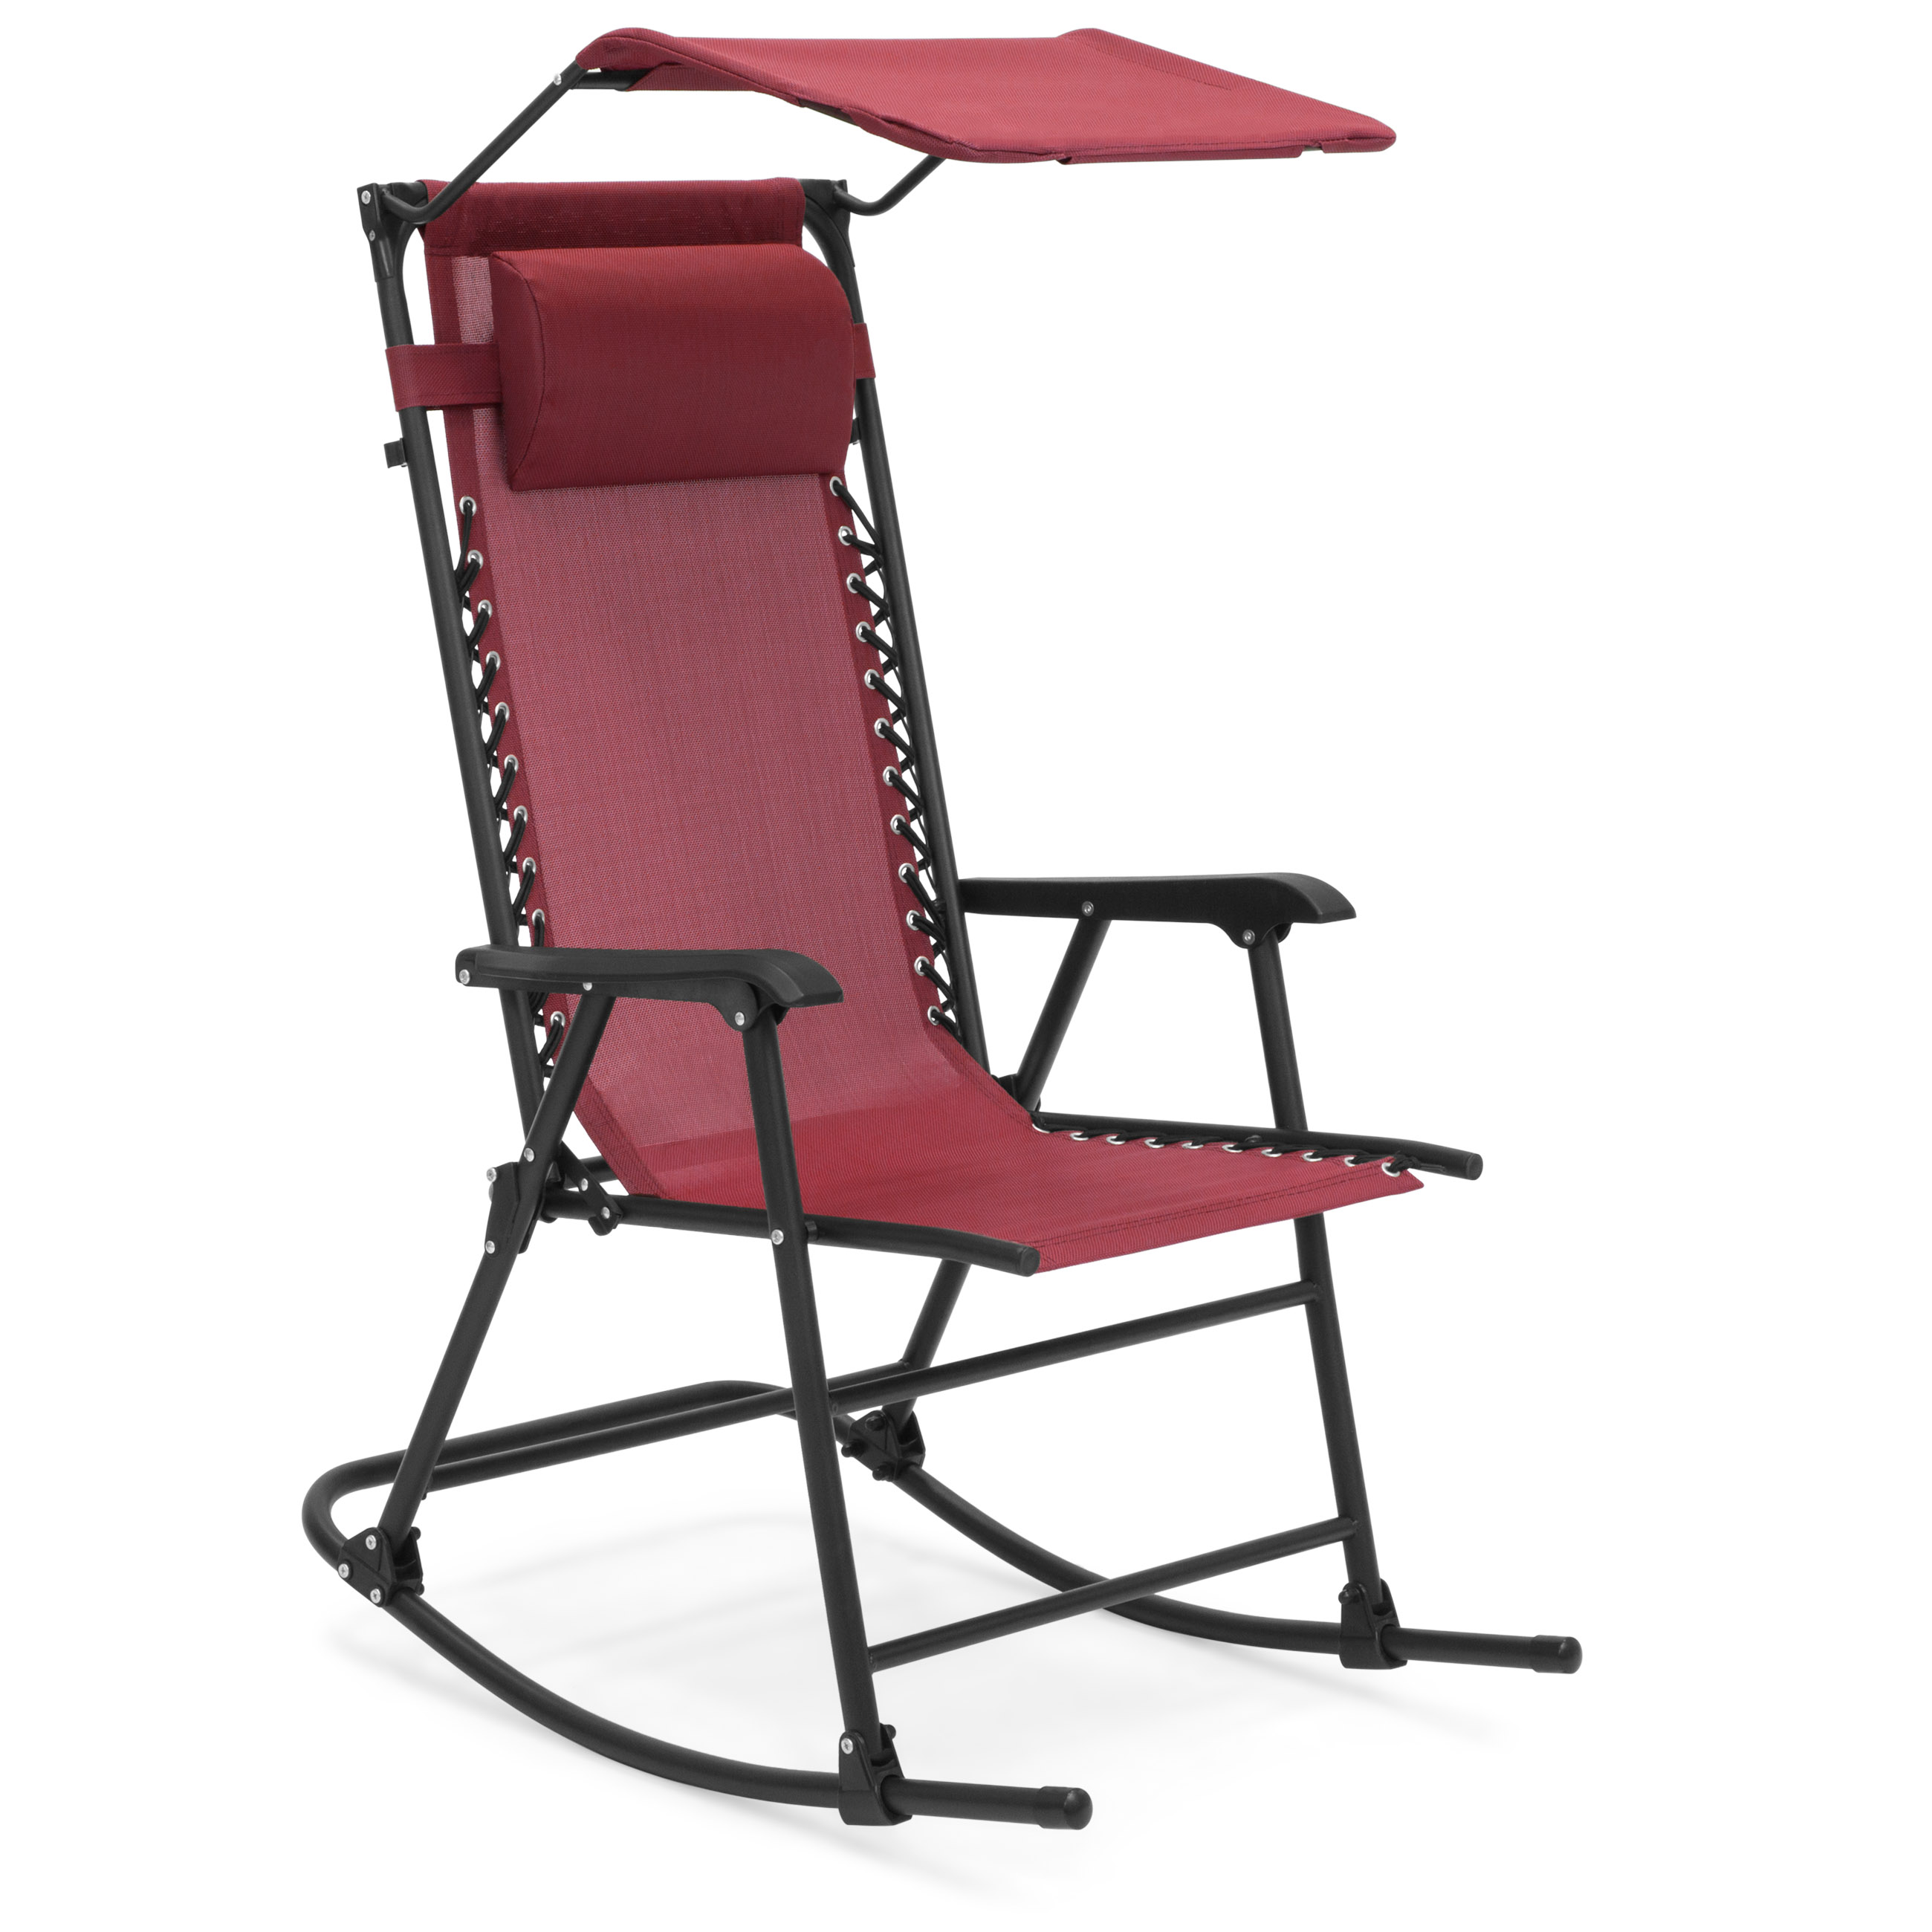 Best Choice Products Foldable Zero Gravity Rocking Patio Chair w/ Sunshade Canopy - Burgundy